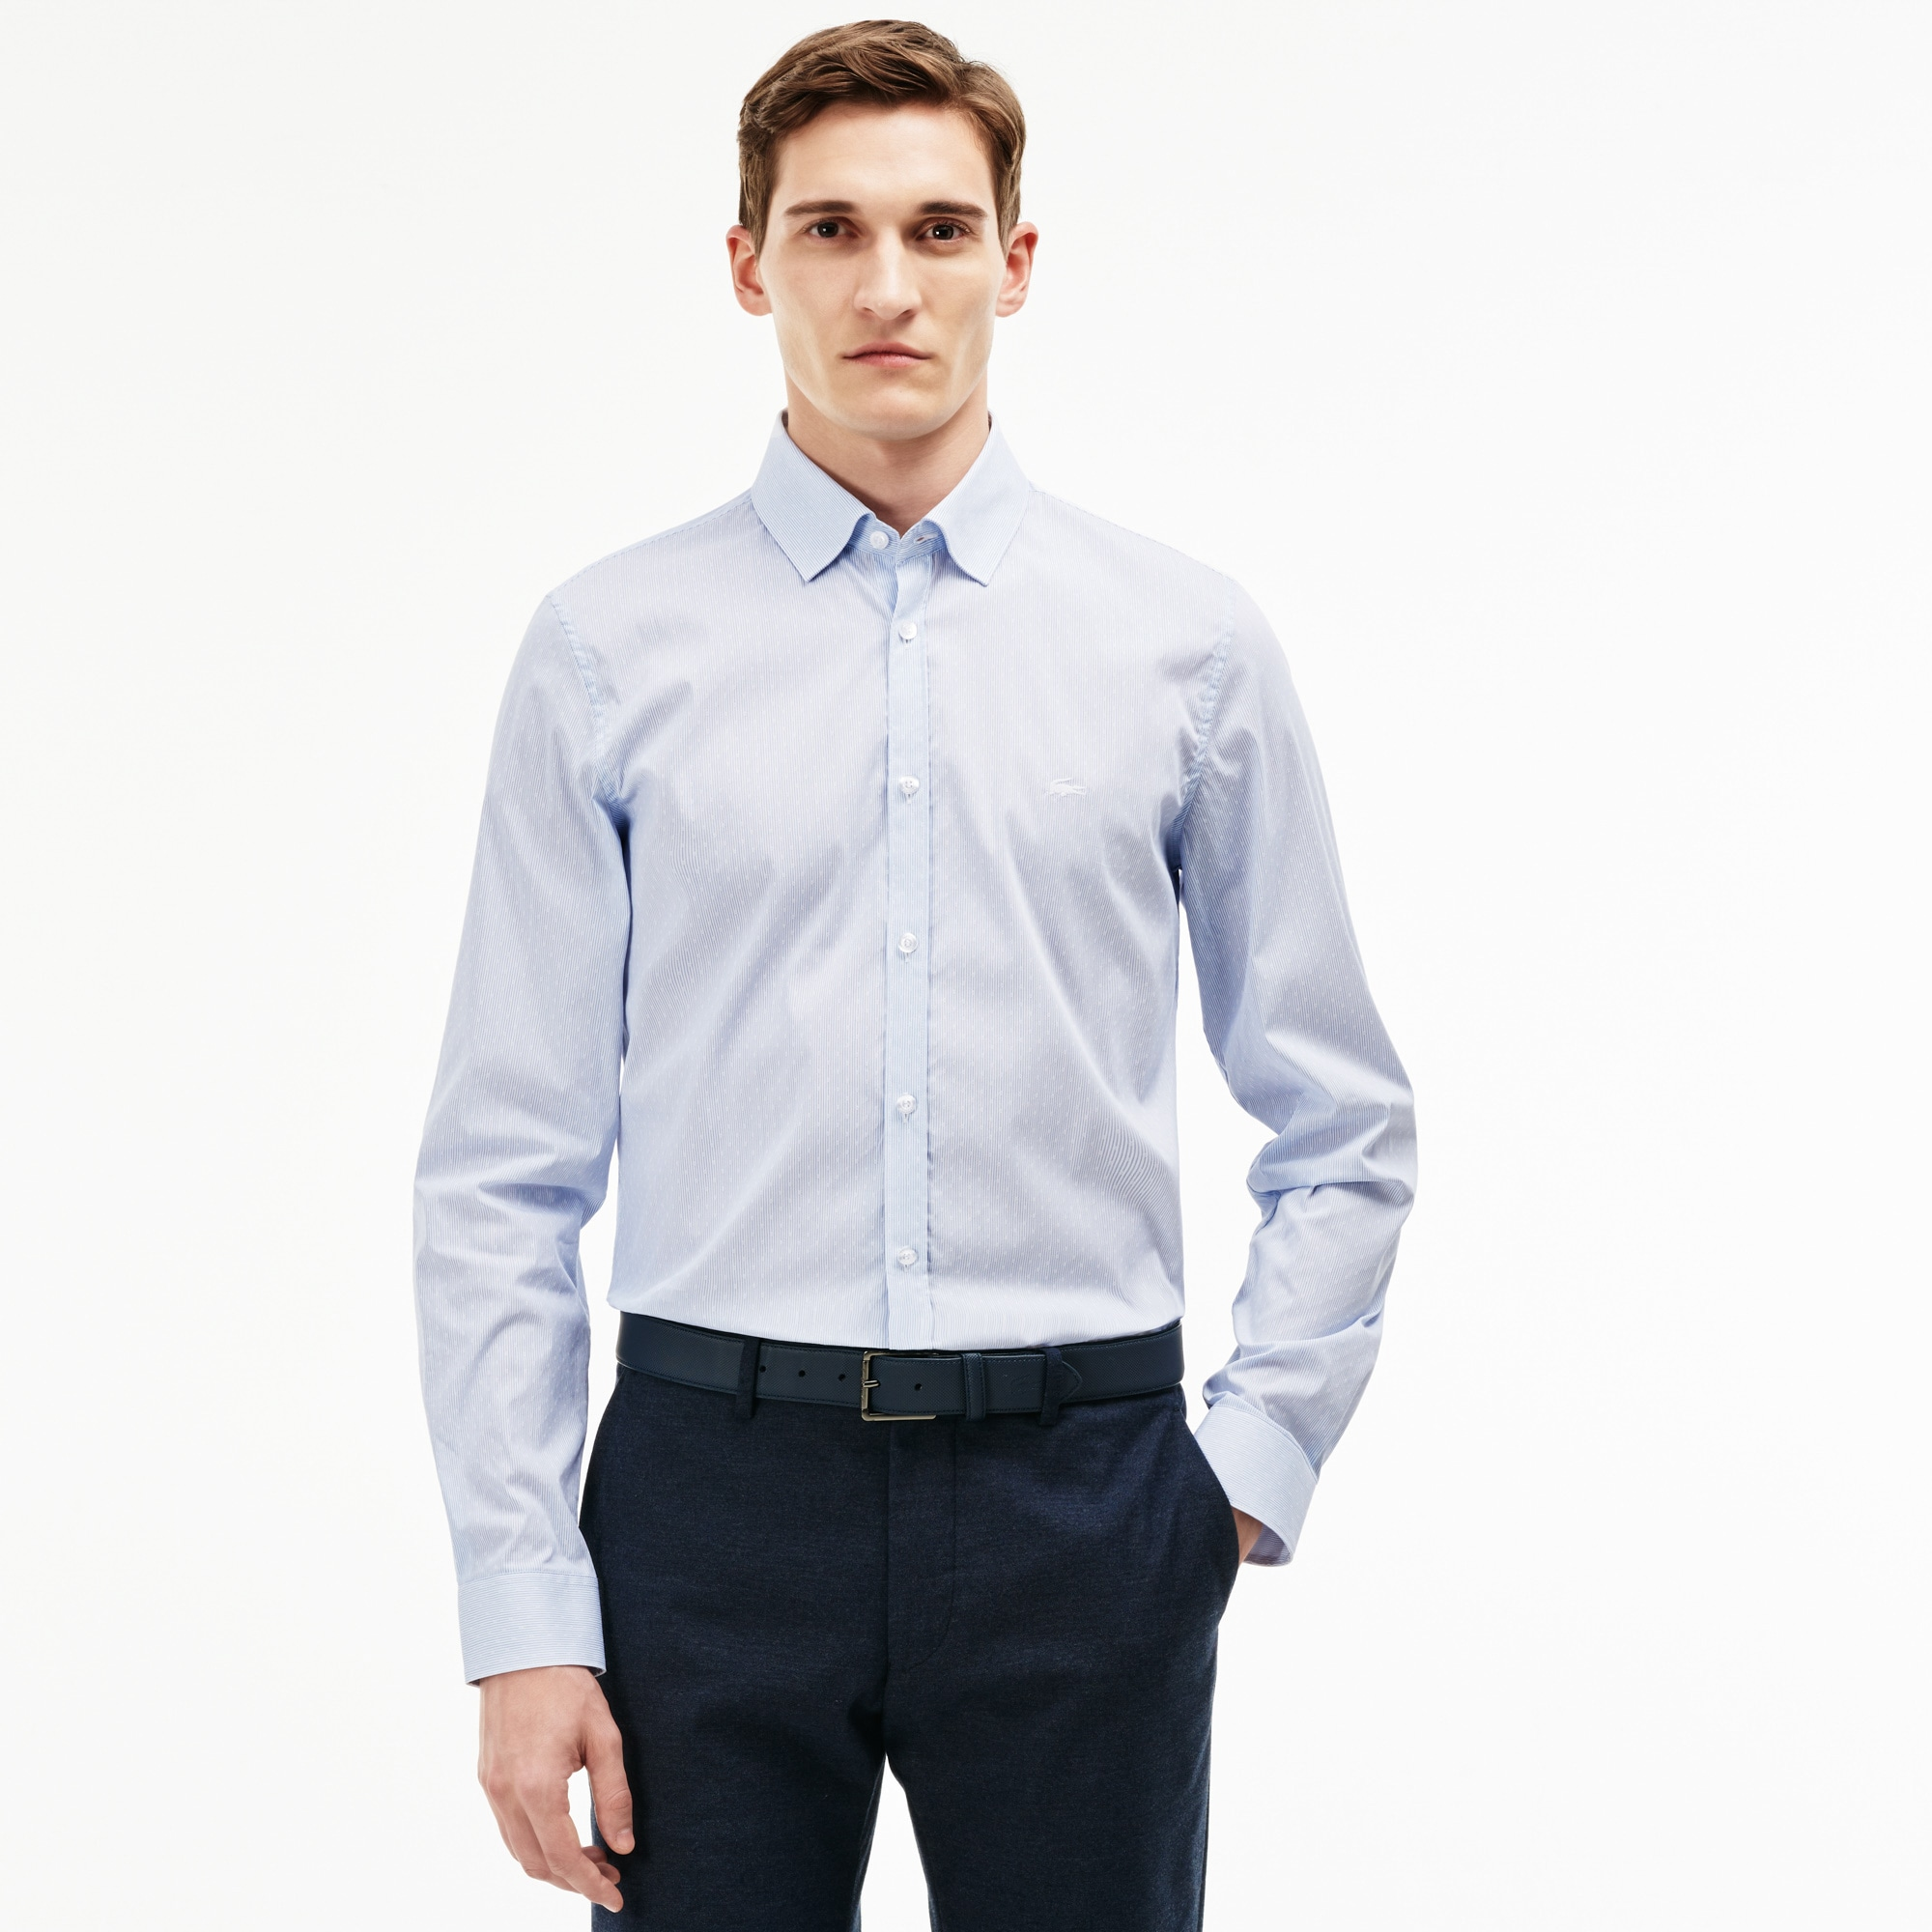 Men's Slim Fit Polka Dots And Stripes Jacquard Poplin Shirt